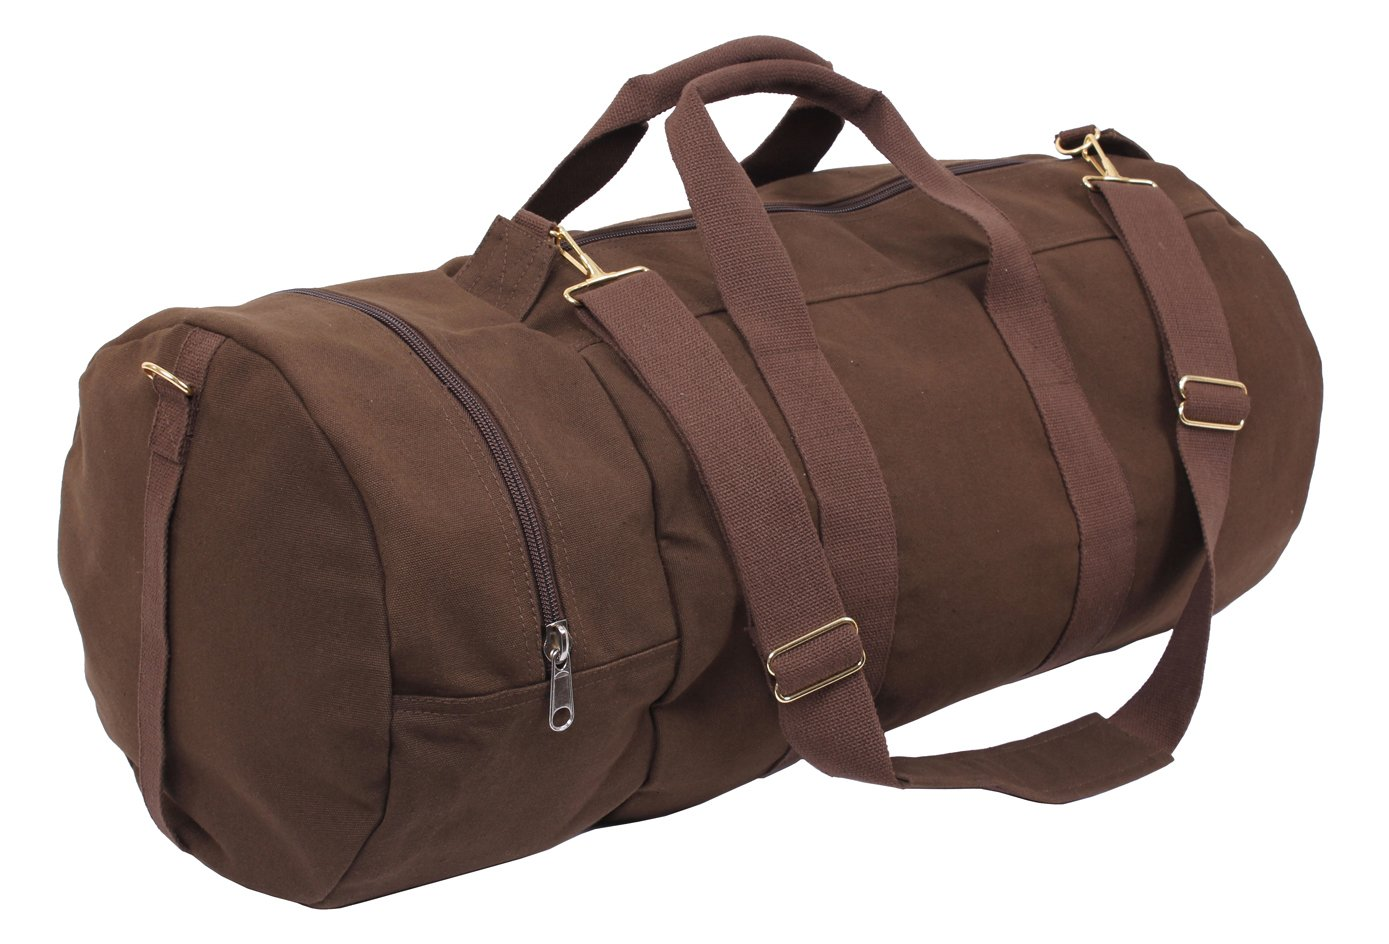 fc0c2730d5 Amazon.com  Rothco Canvas Double-Ender Sports Bag